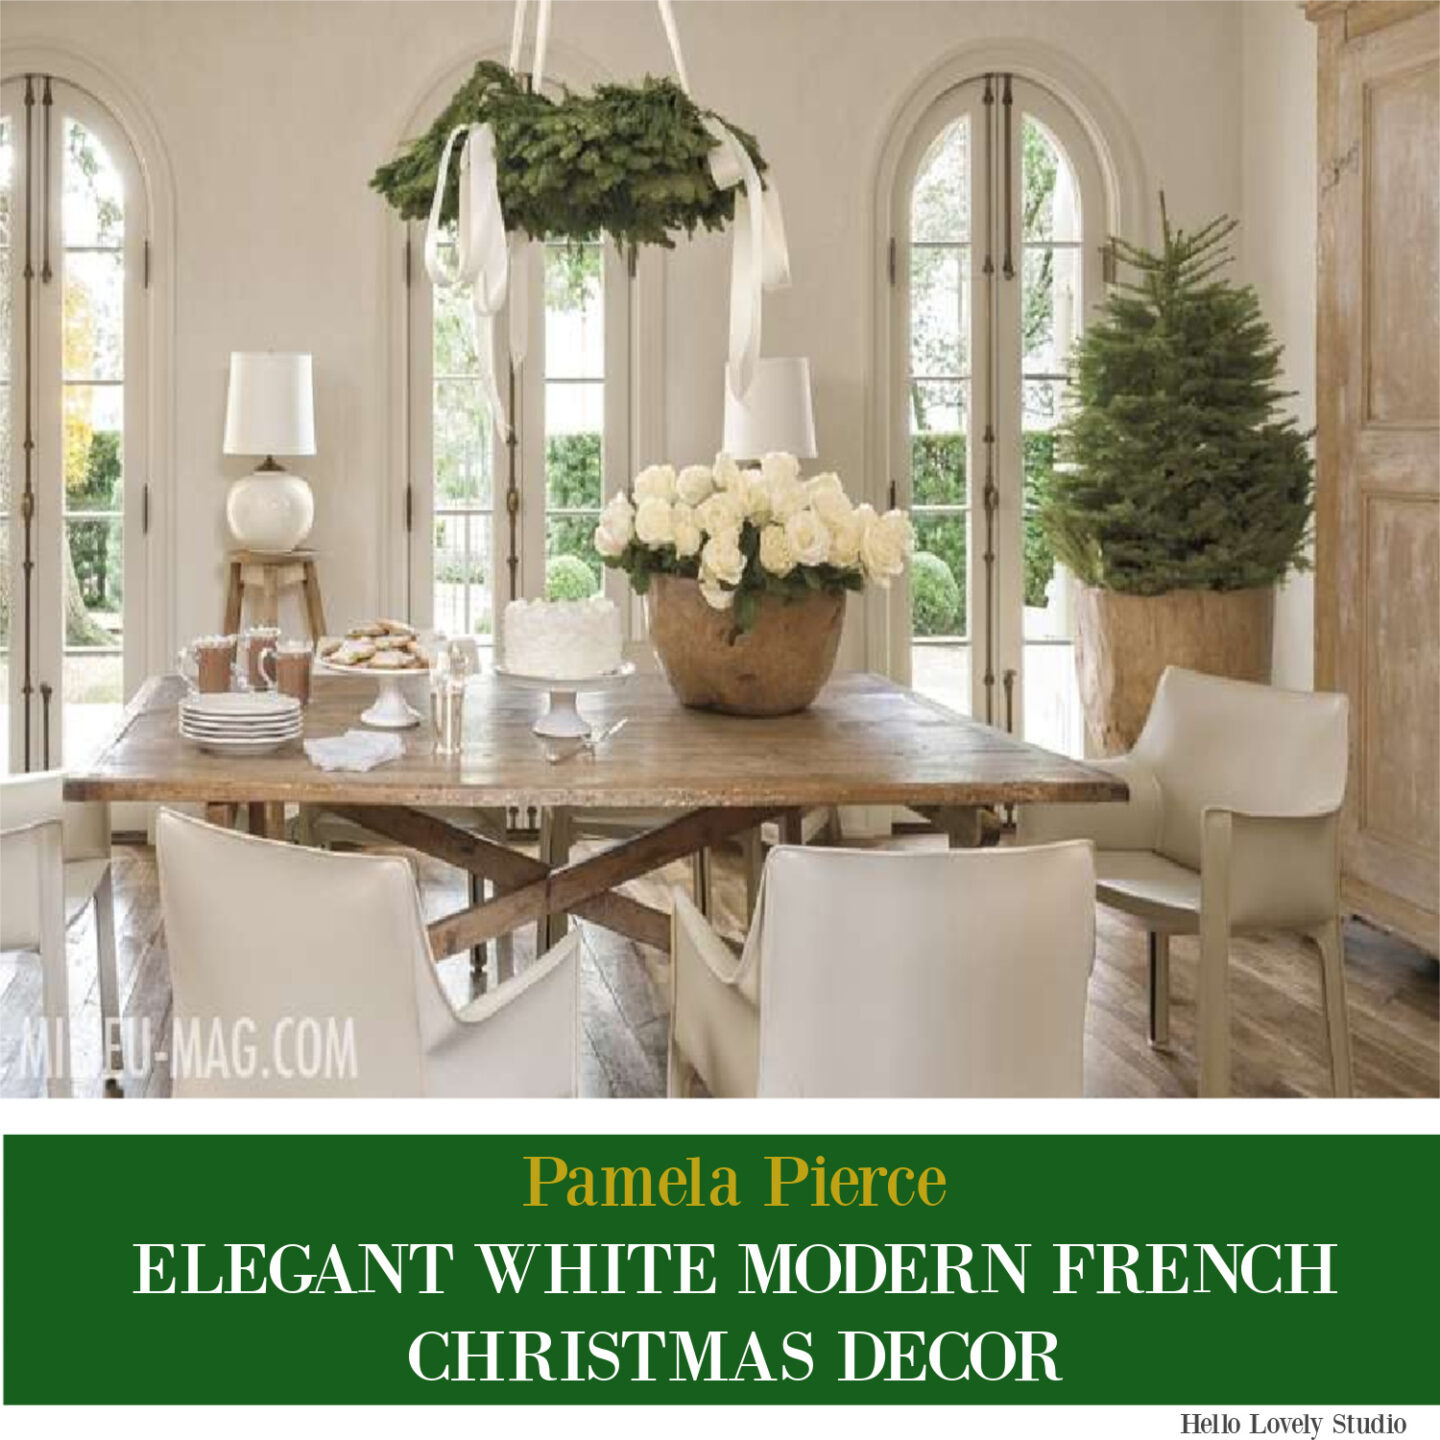 White Christmas Decor Inspiration from Pamela Pierce & her exquisite modern French home featured in Milieu magazine! #whitechristmasdecor #frenchcountrychristmas #pamelapierce